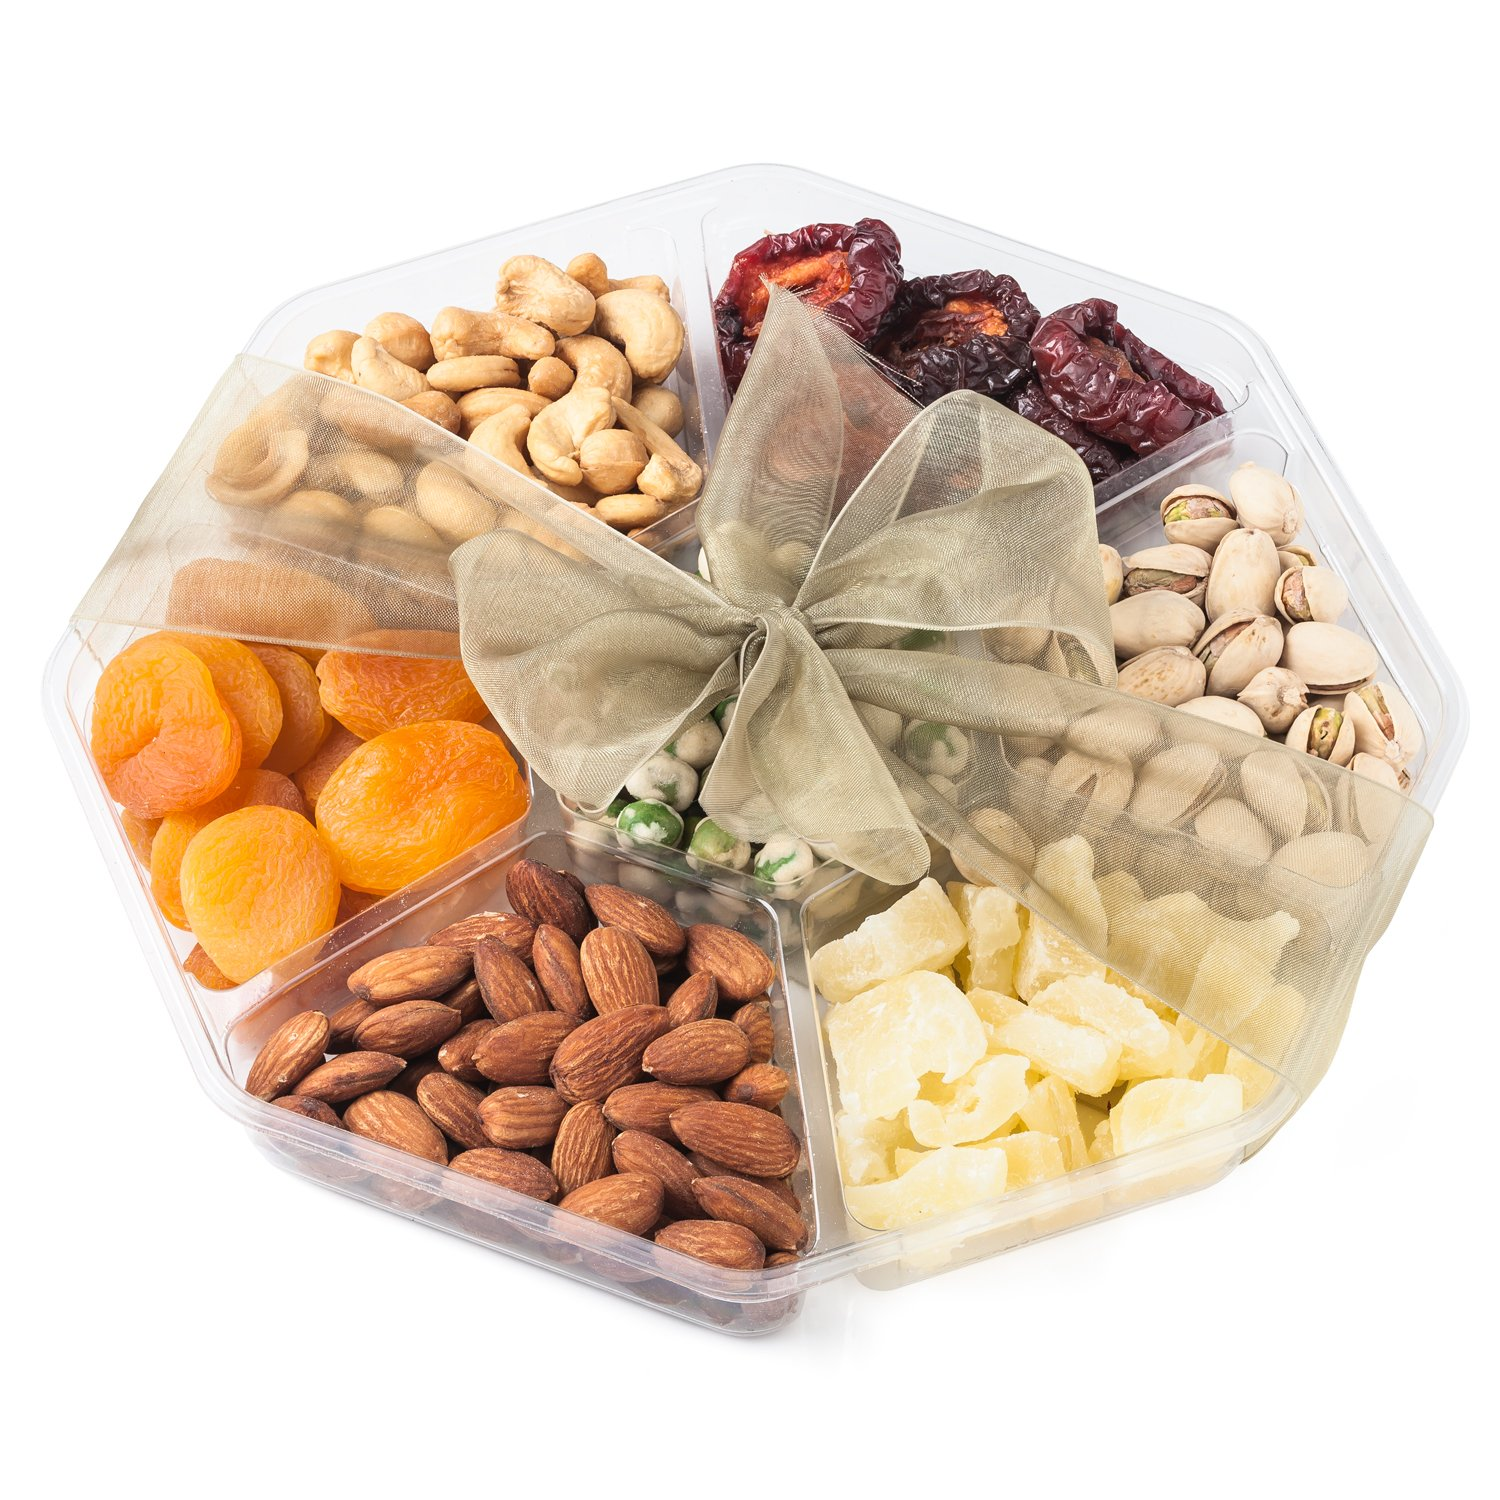 Nutty New Yorker Gourmet Food Fruit and Nuts Gift Basket, 3 Different Fruits 3 Different Nuts and Wasabi Peas - 22.7 Ounces - Kosher Certified by Nutty New Yorker